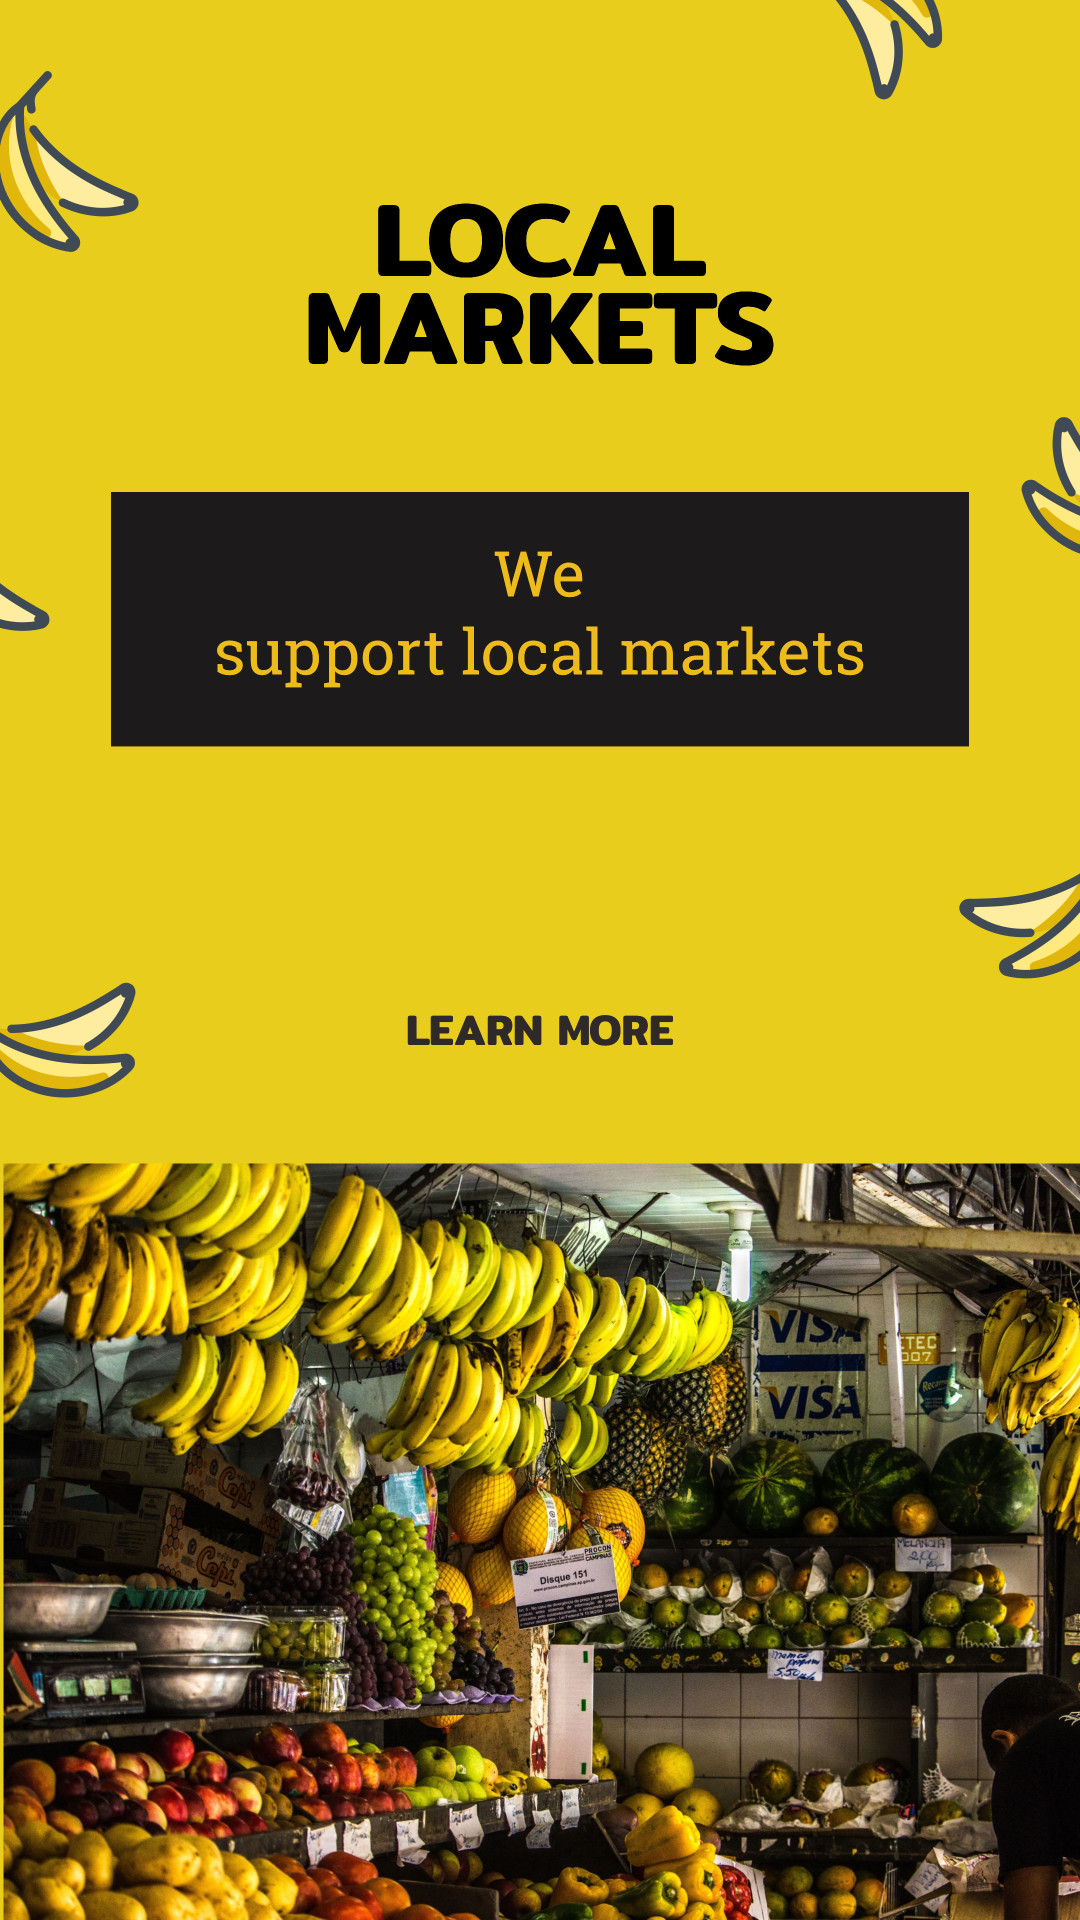 We support local markets